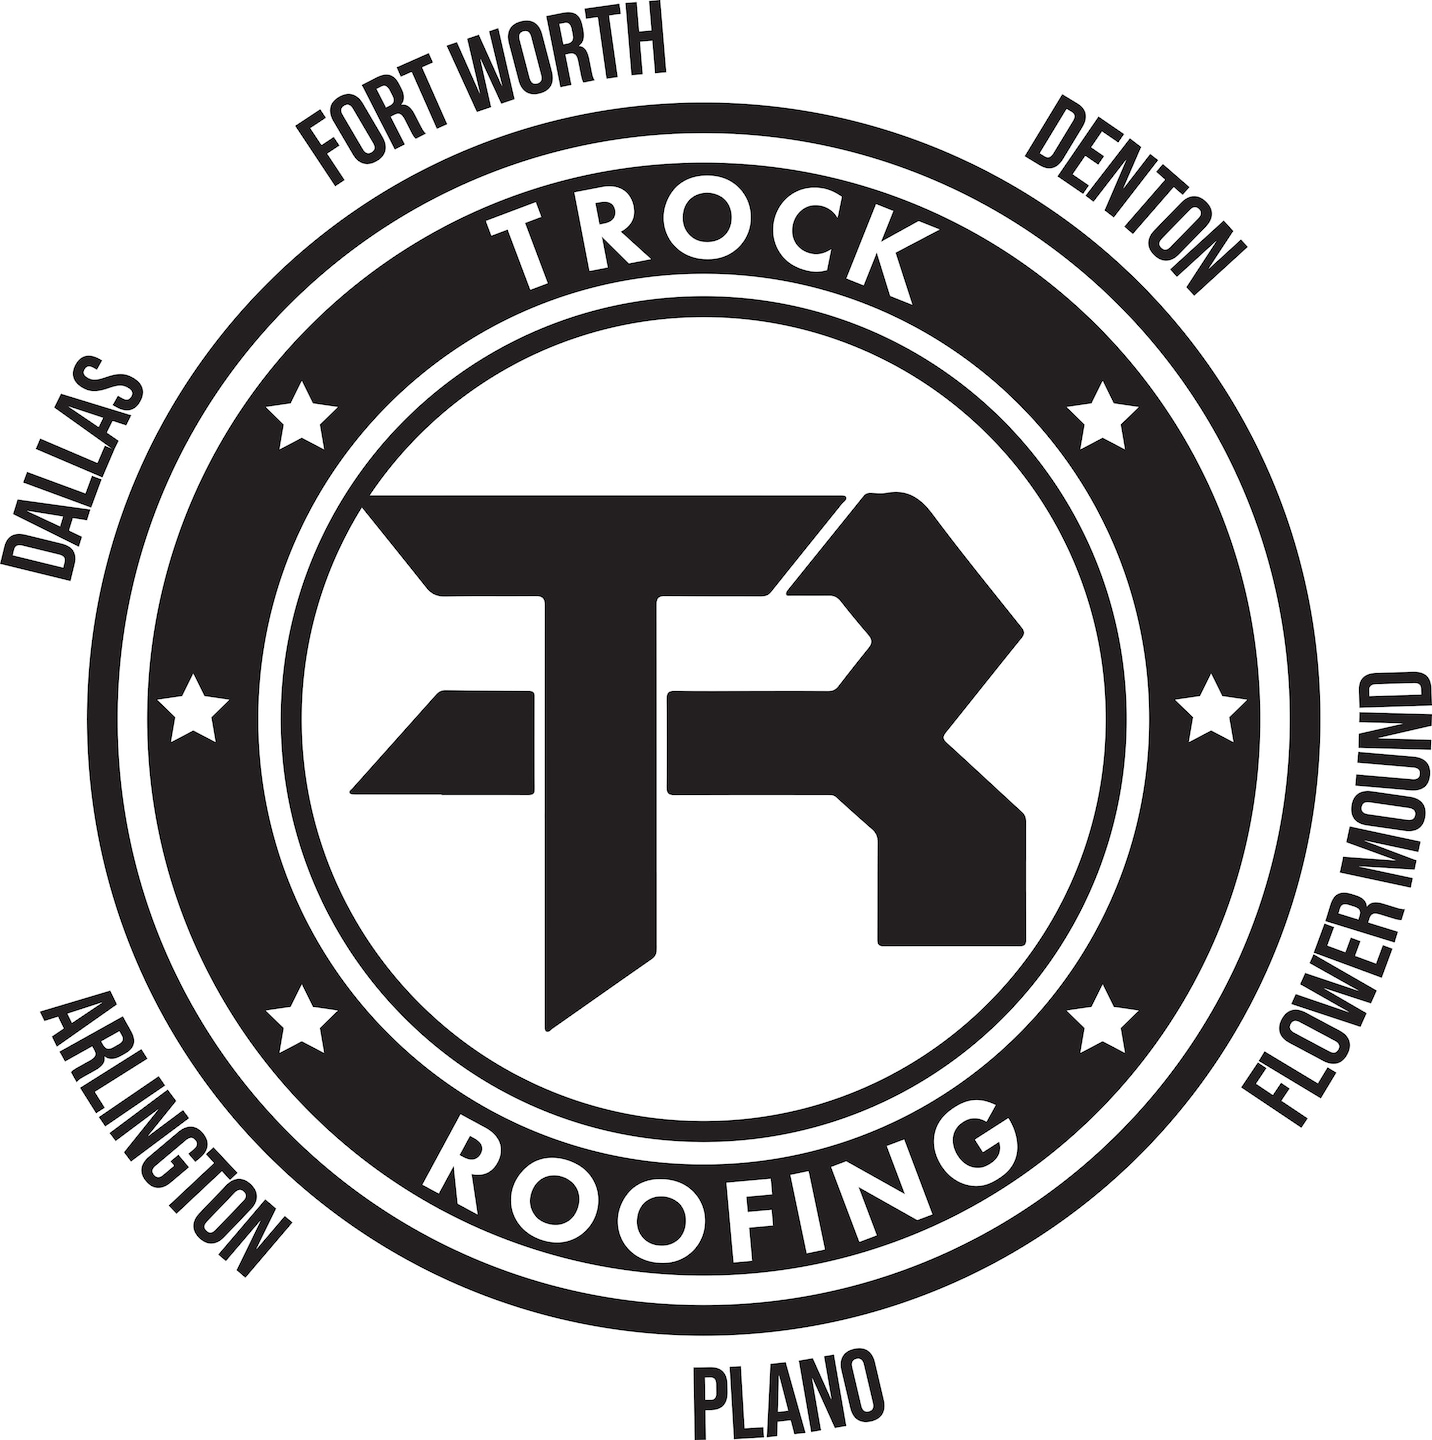 T Rock Roofing & Construction logo